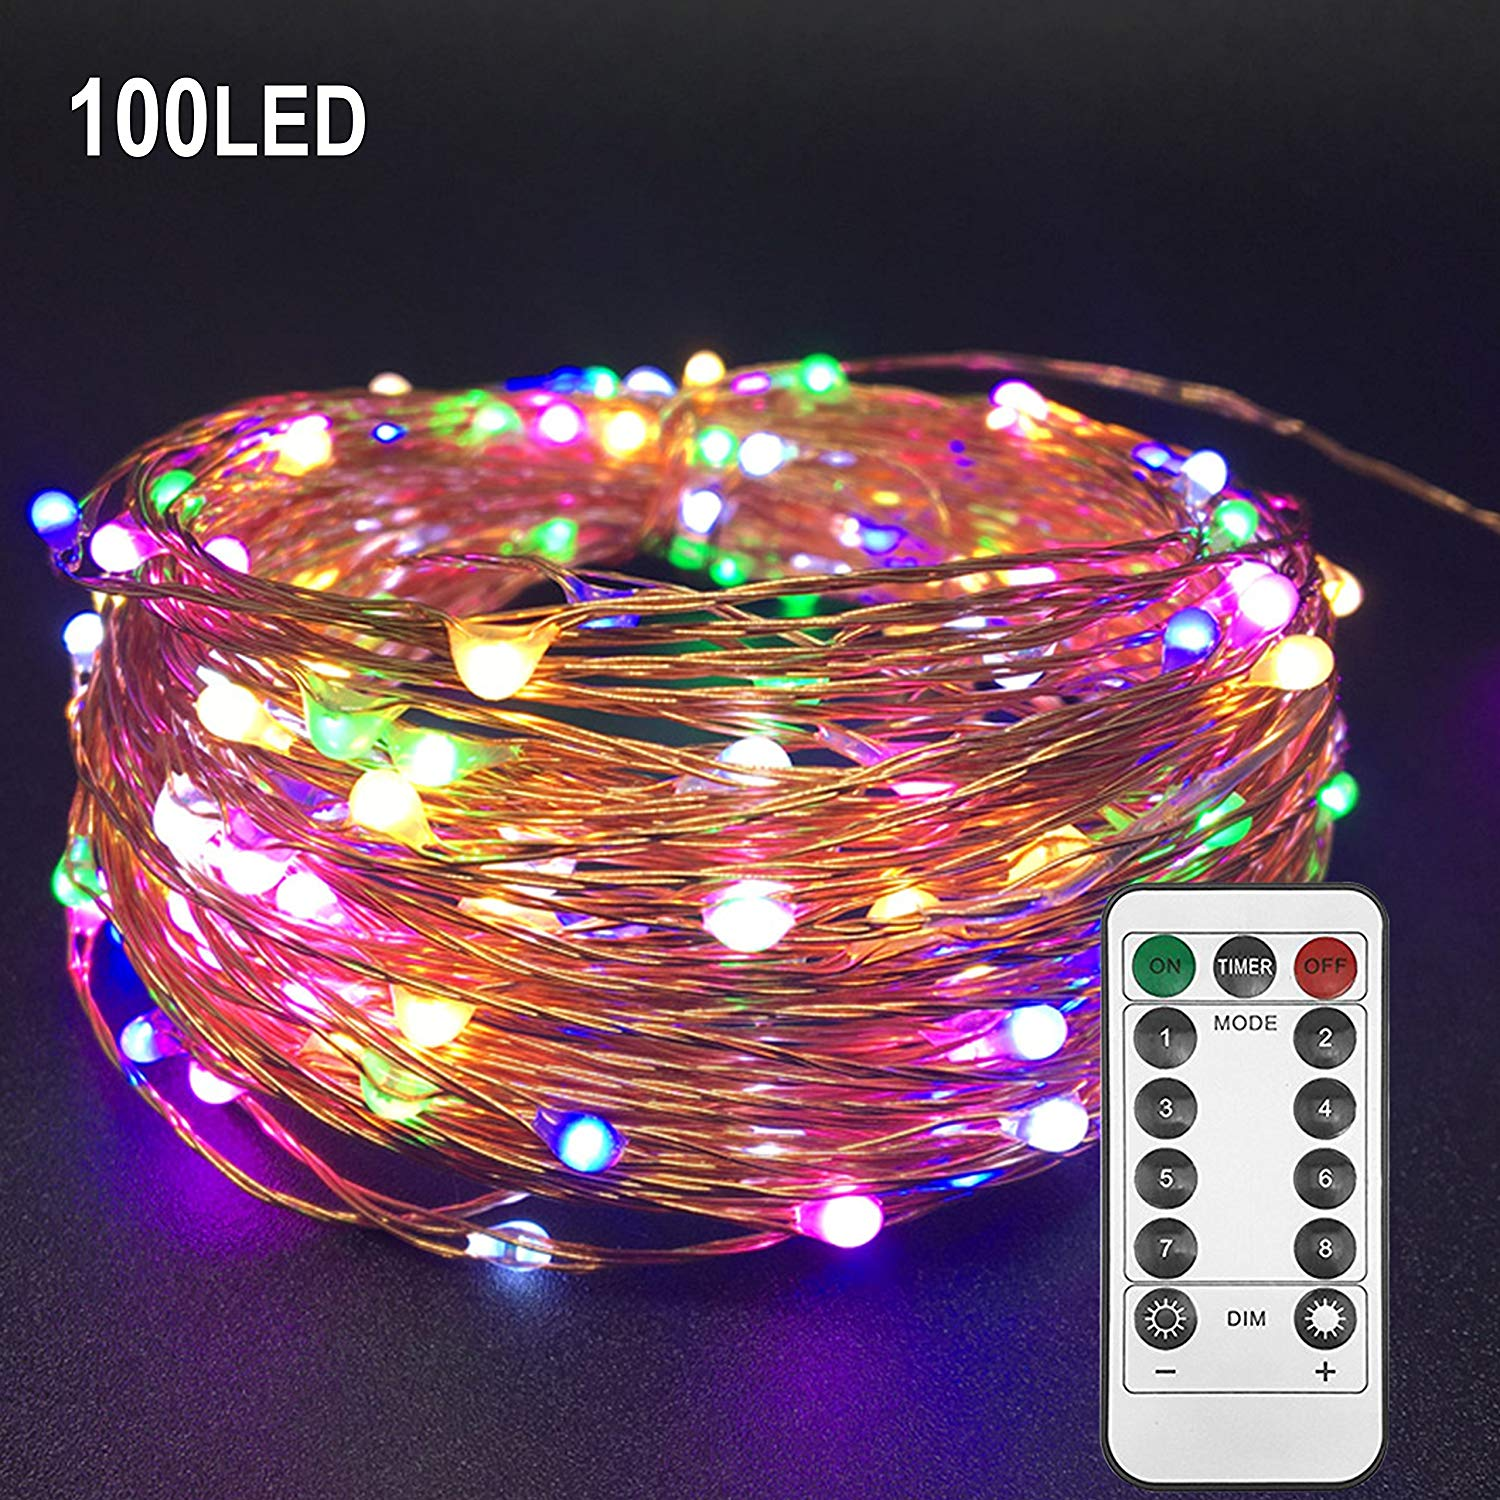 Twinkle Star 33ft 100LED Multi-Color Copper Wire String Lights Fairy String Lights 8 Modes LED String Lights USB Powered with Remote Control for Wedding Party Home